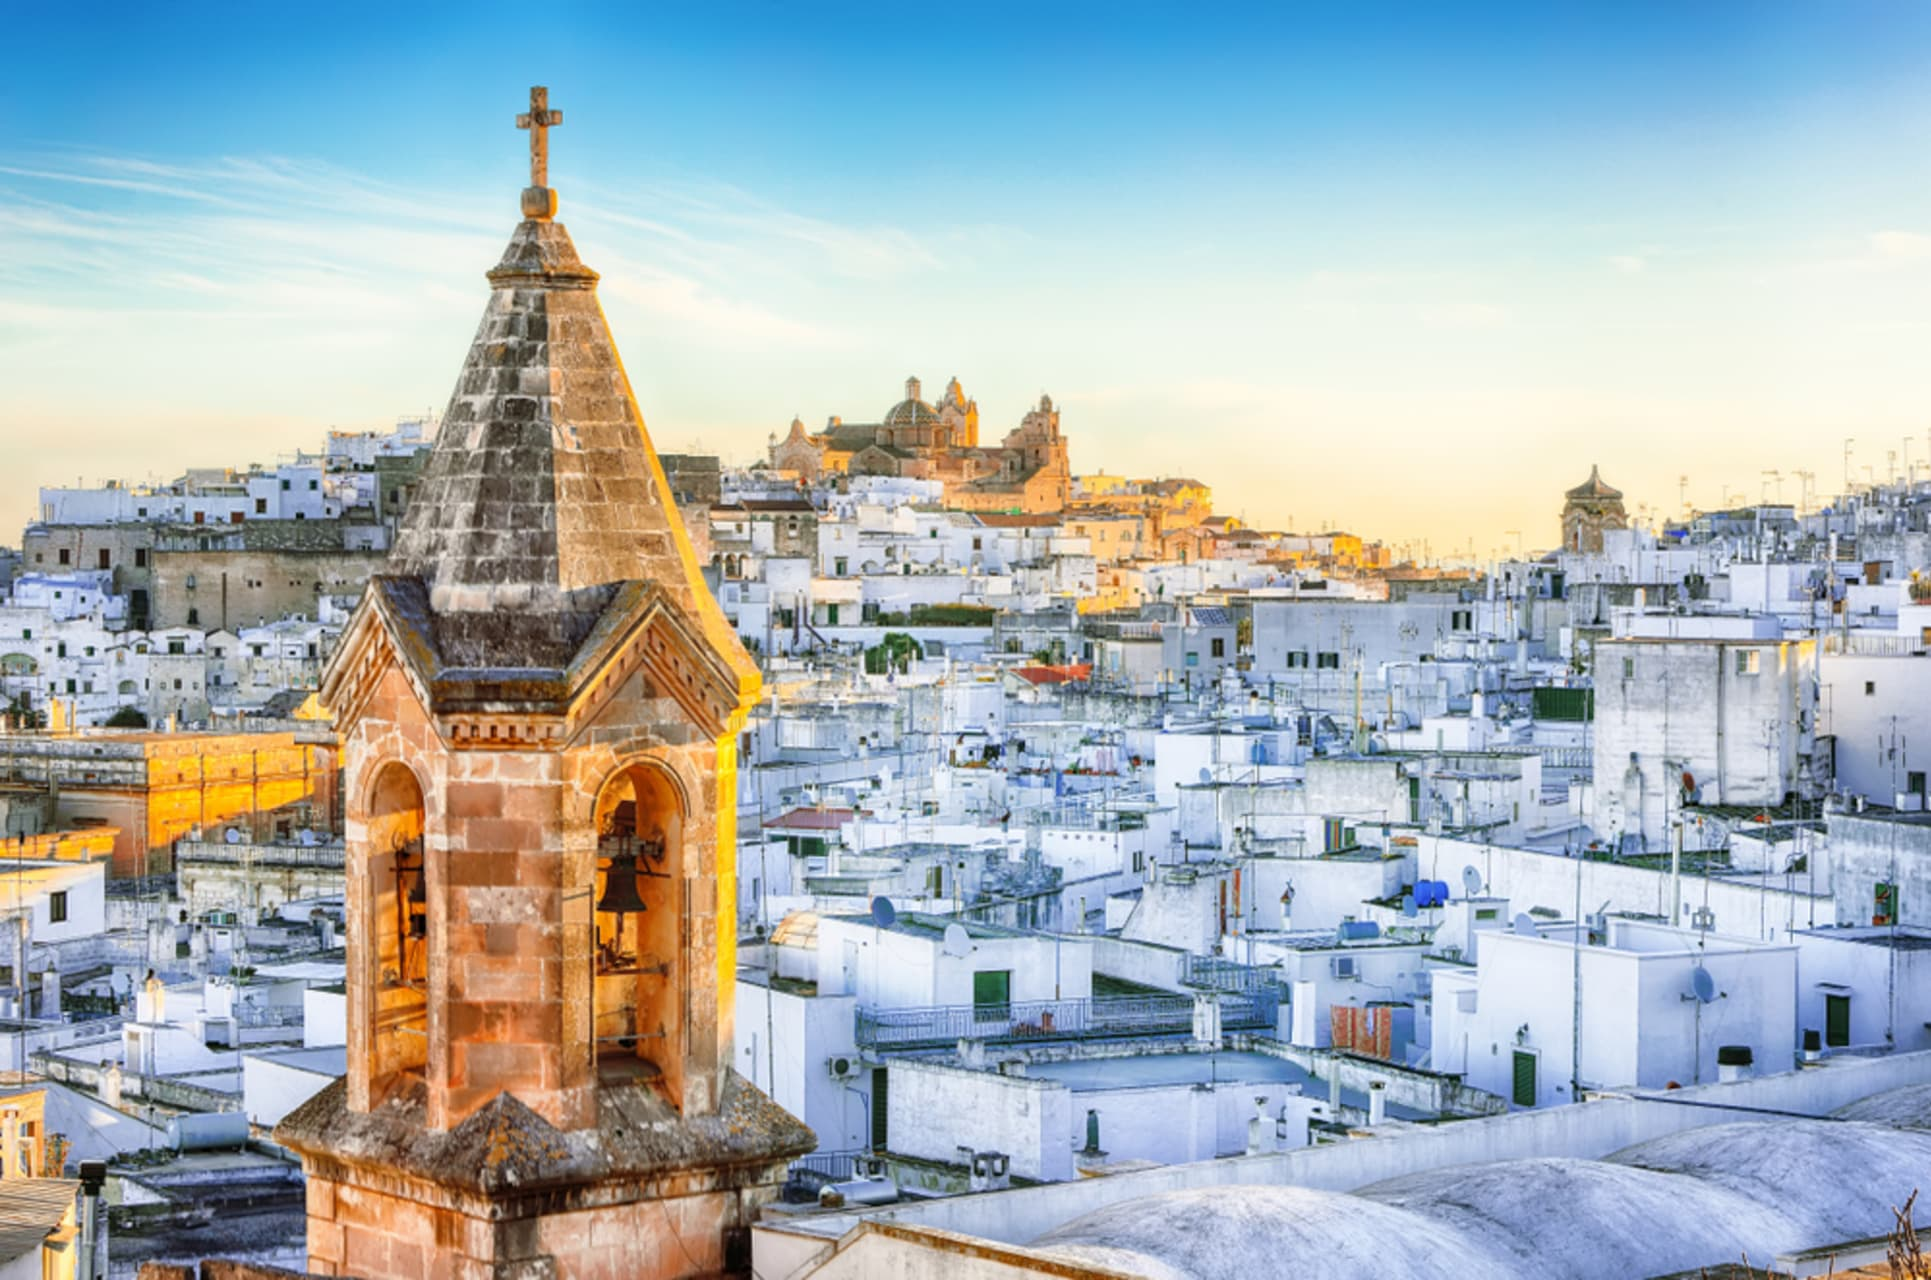 Puglia - The white town of Ostuni and its ancient past